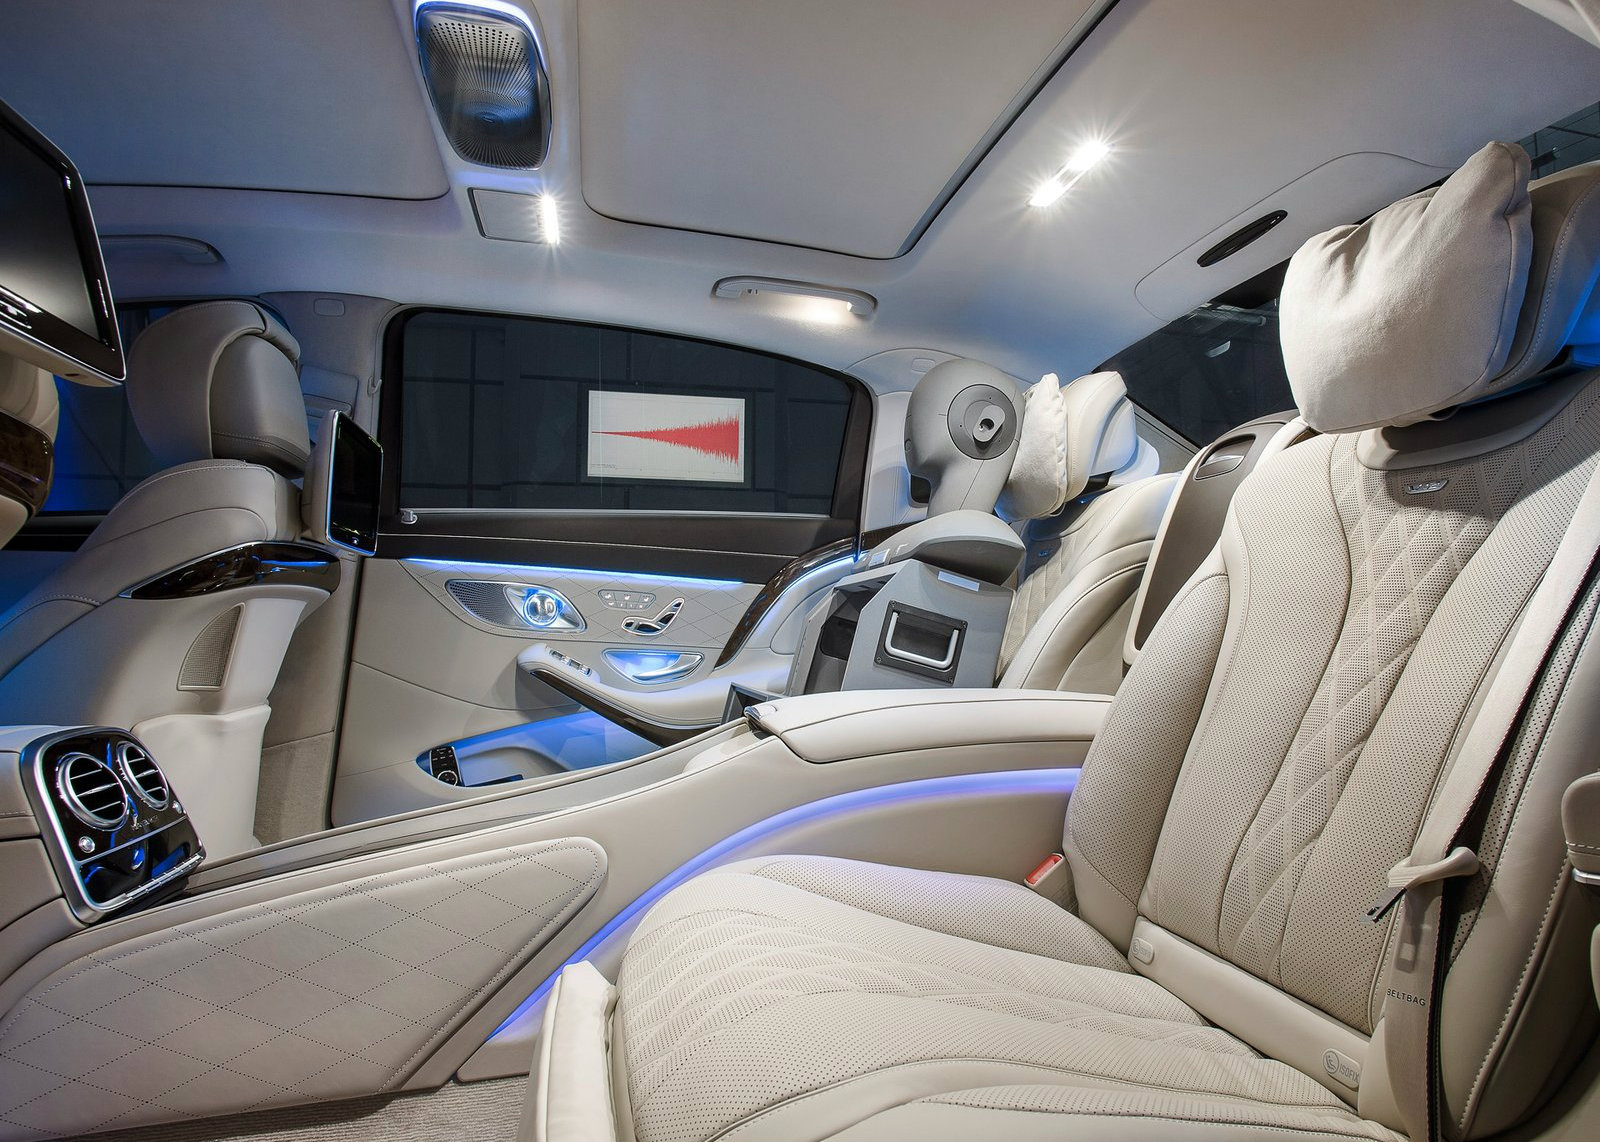 Toyota Of Pullman >> Mercedes-Maybach S500 Priced at €134,053, S600 is €187,841 in Germany - autoevolution